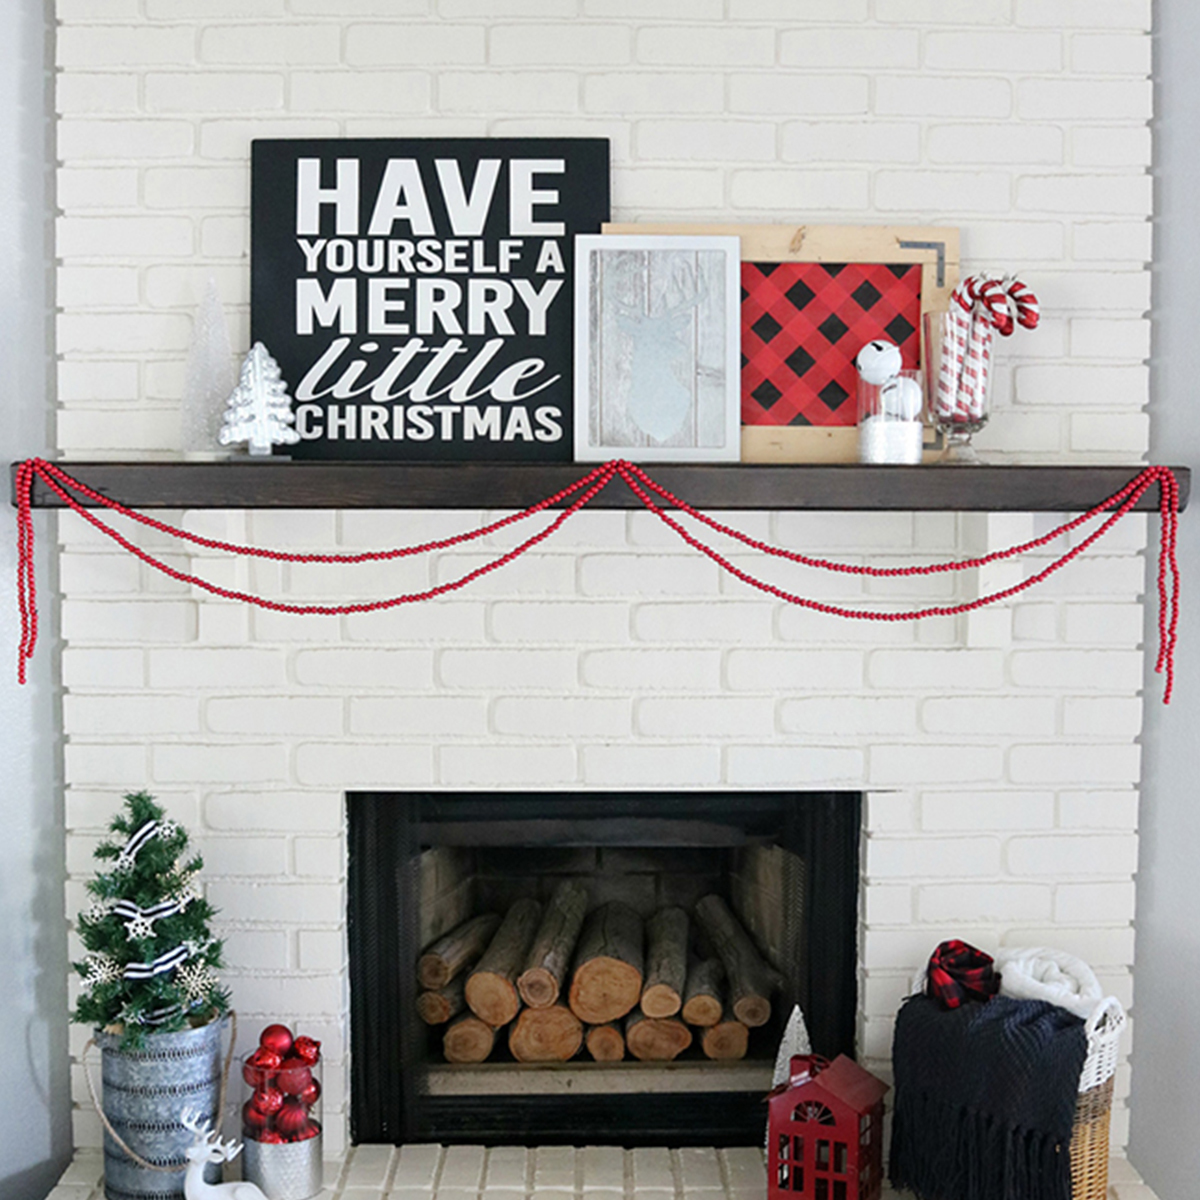 Better Homes & Gardens plush velvet throws and shelf with Christmas decorations on it photo